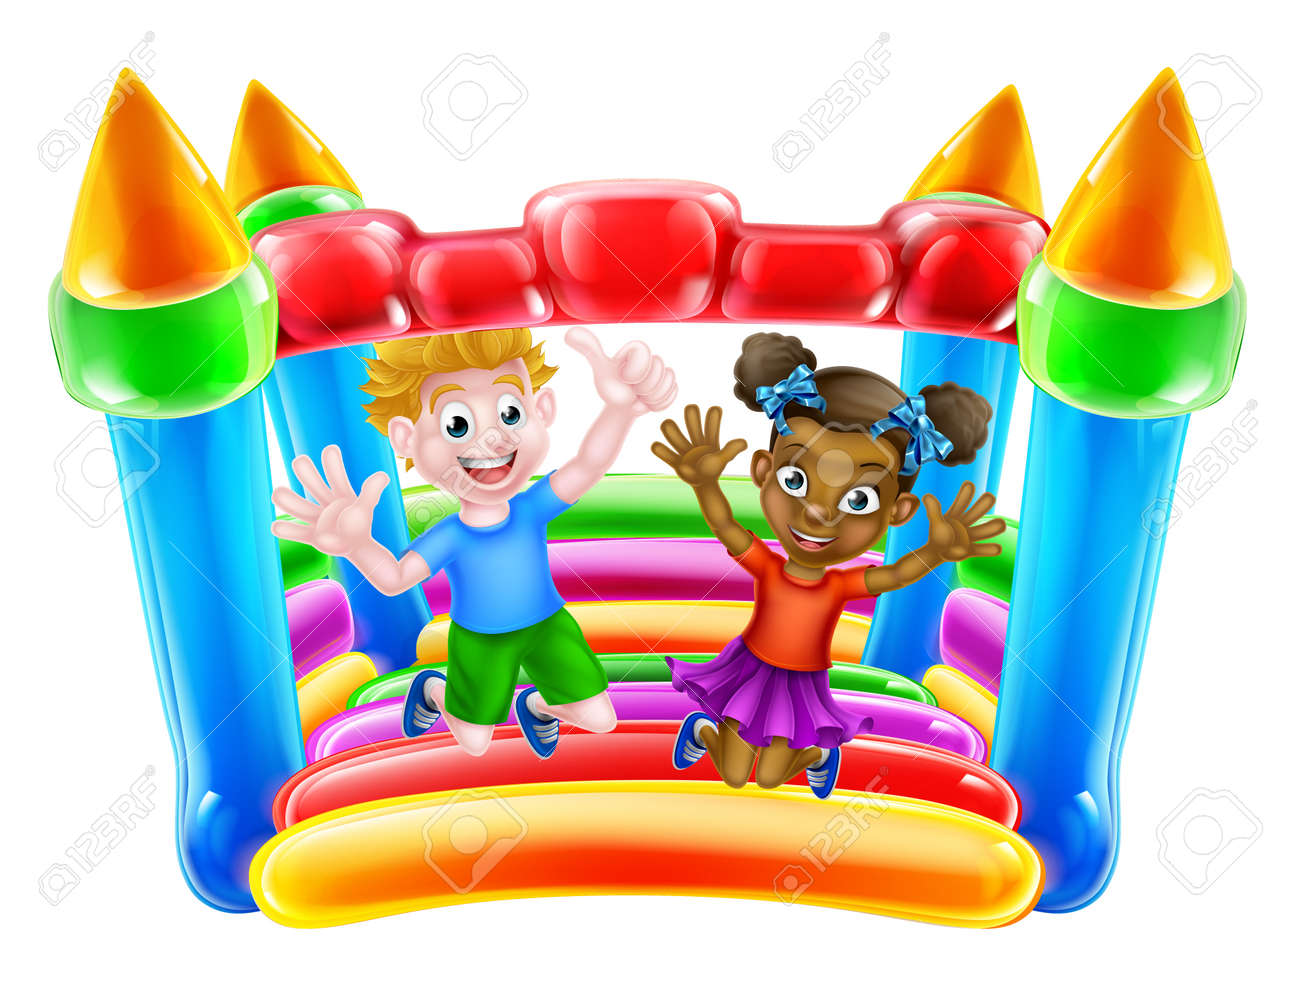 Cartoon boy and girl playing on a bouncy castle - 54228115